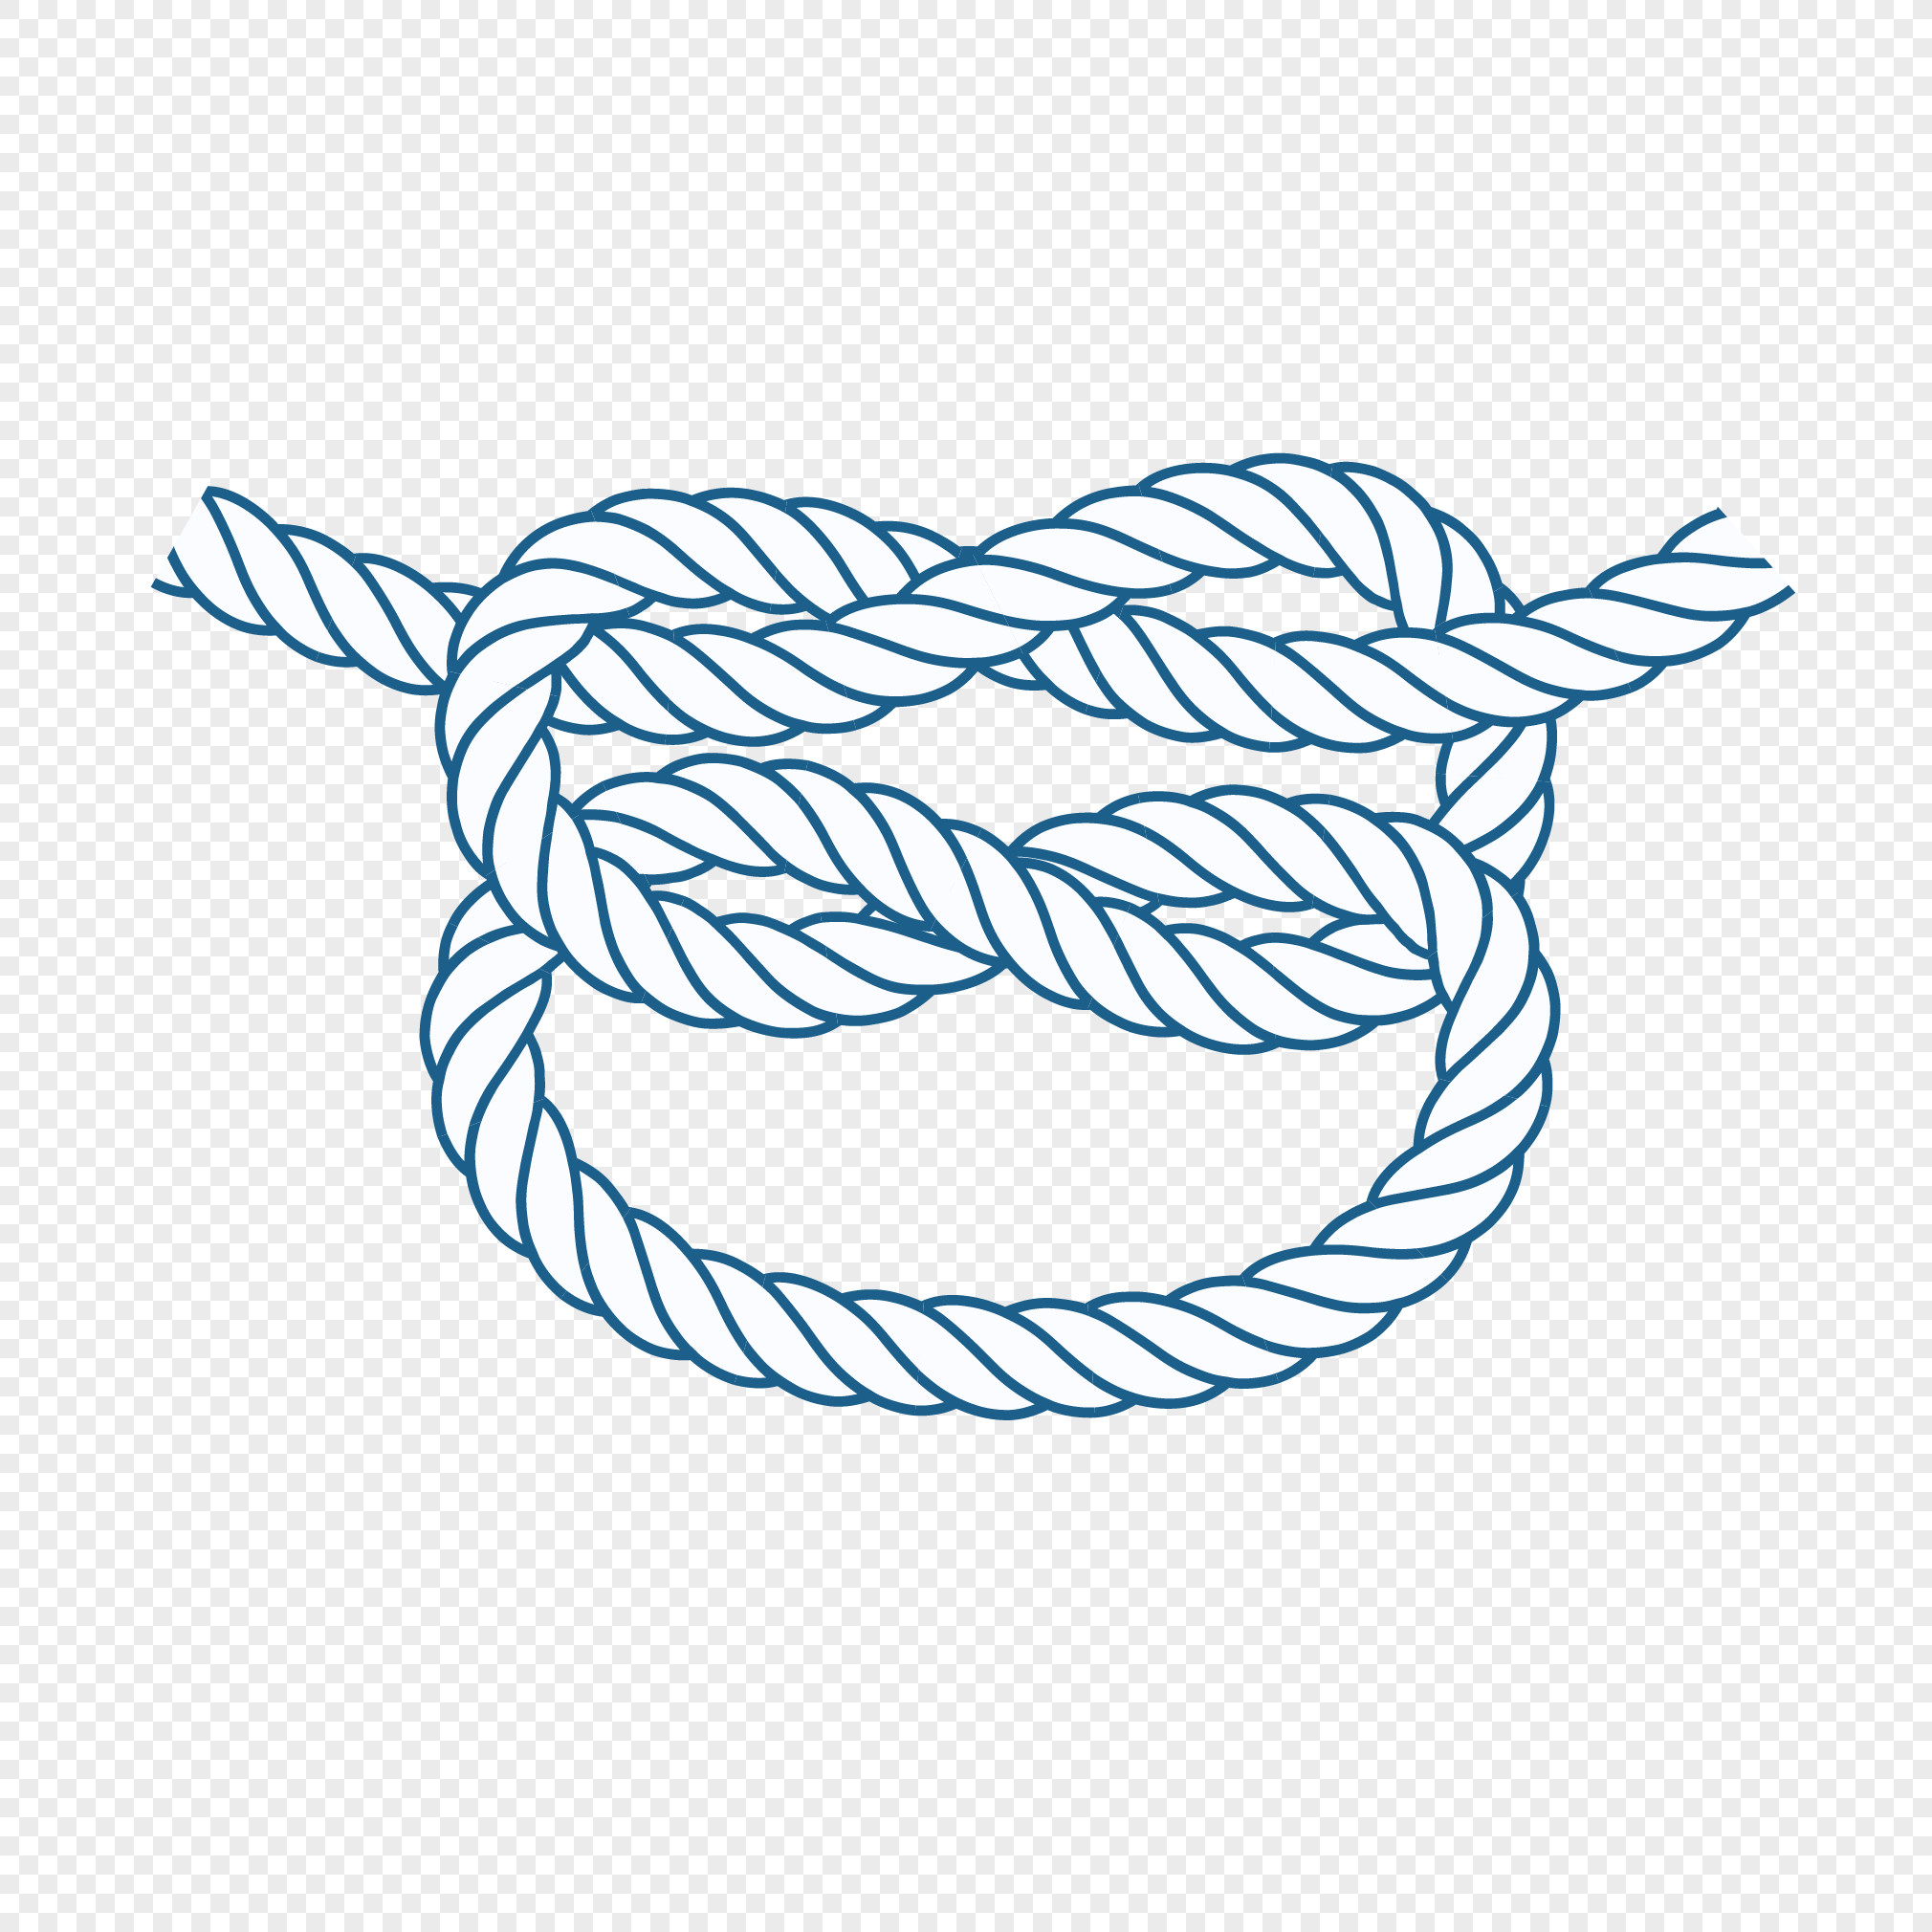 Cordage png image_picture free download 400671584_lovepik.com